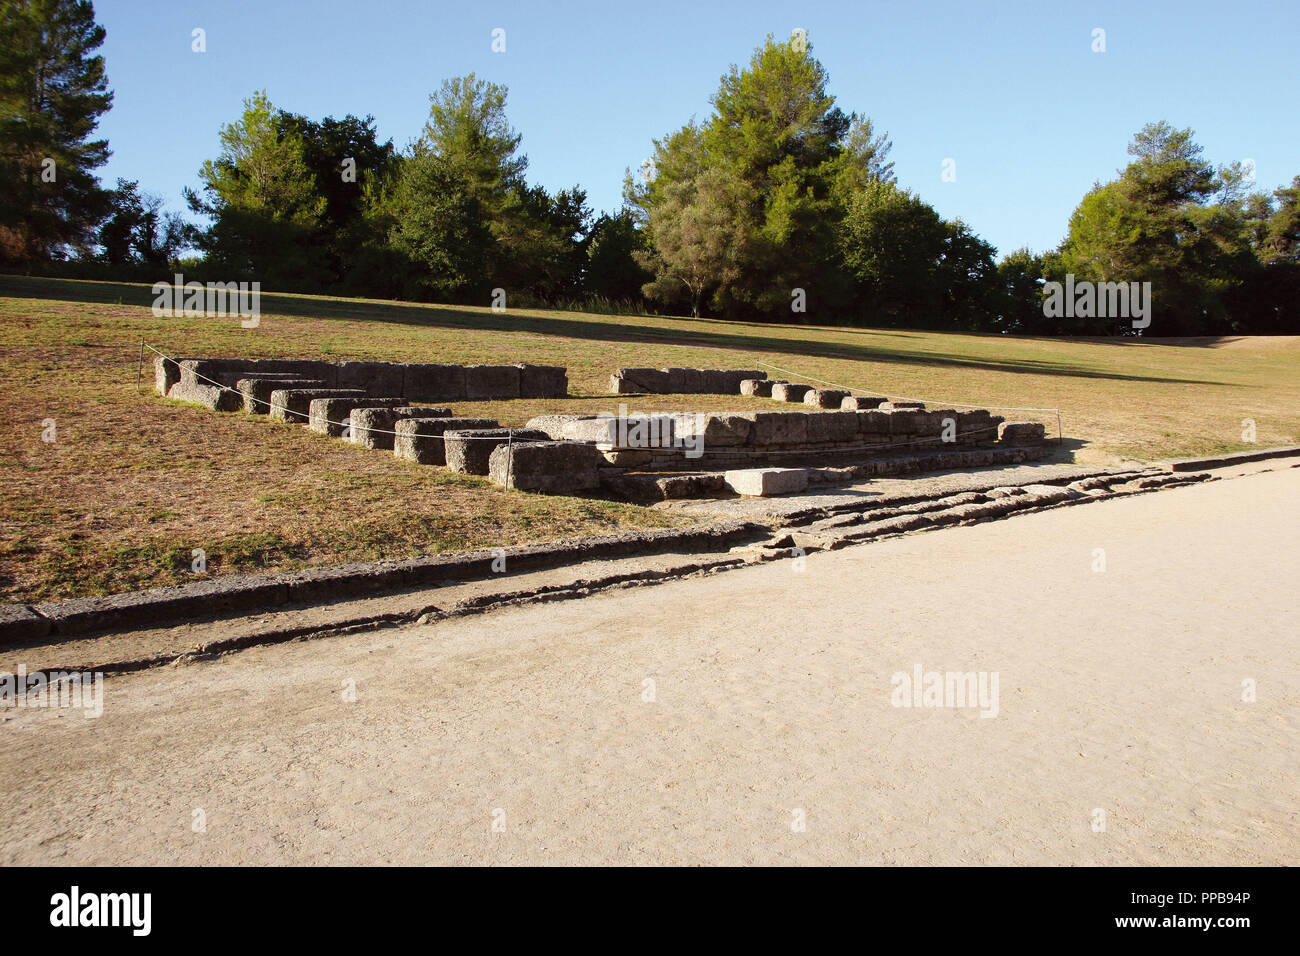 Greek Art. Sanctuary of Olympia. The ancient Olympic Stadium. Remains of the Judges Platform (Hellanodikes). The east of archaelogical site.  Elis. Peloponesse. Greece. Europe. - Stock Image